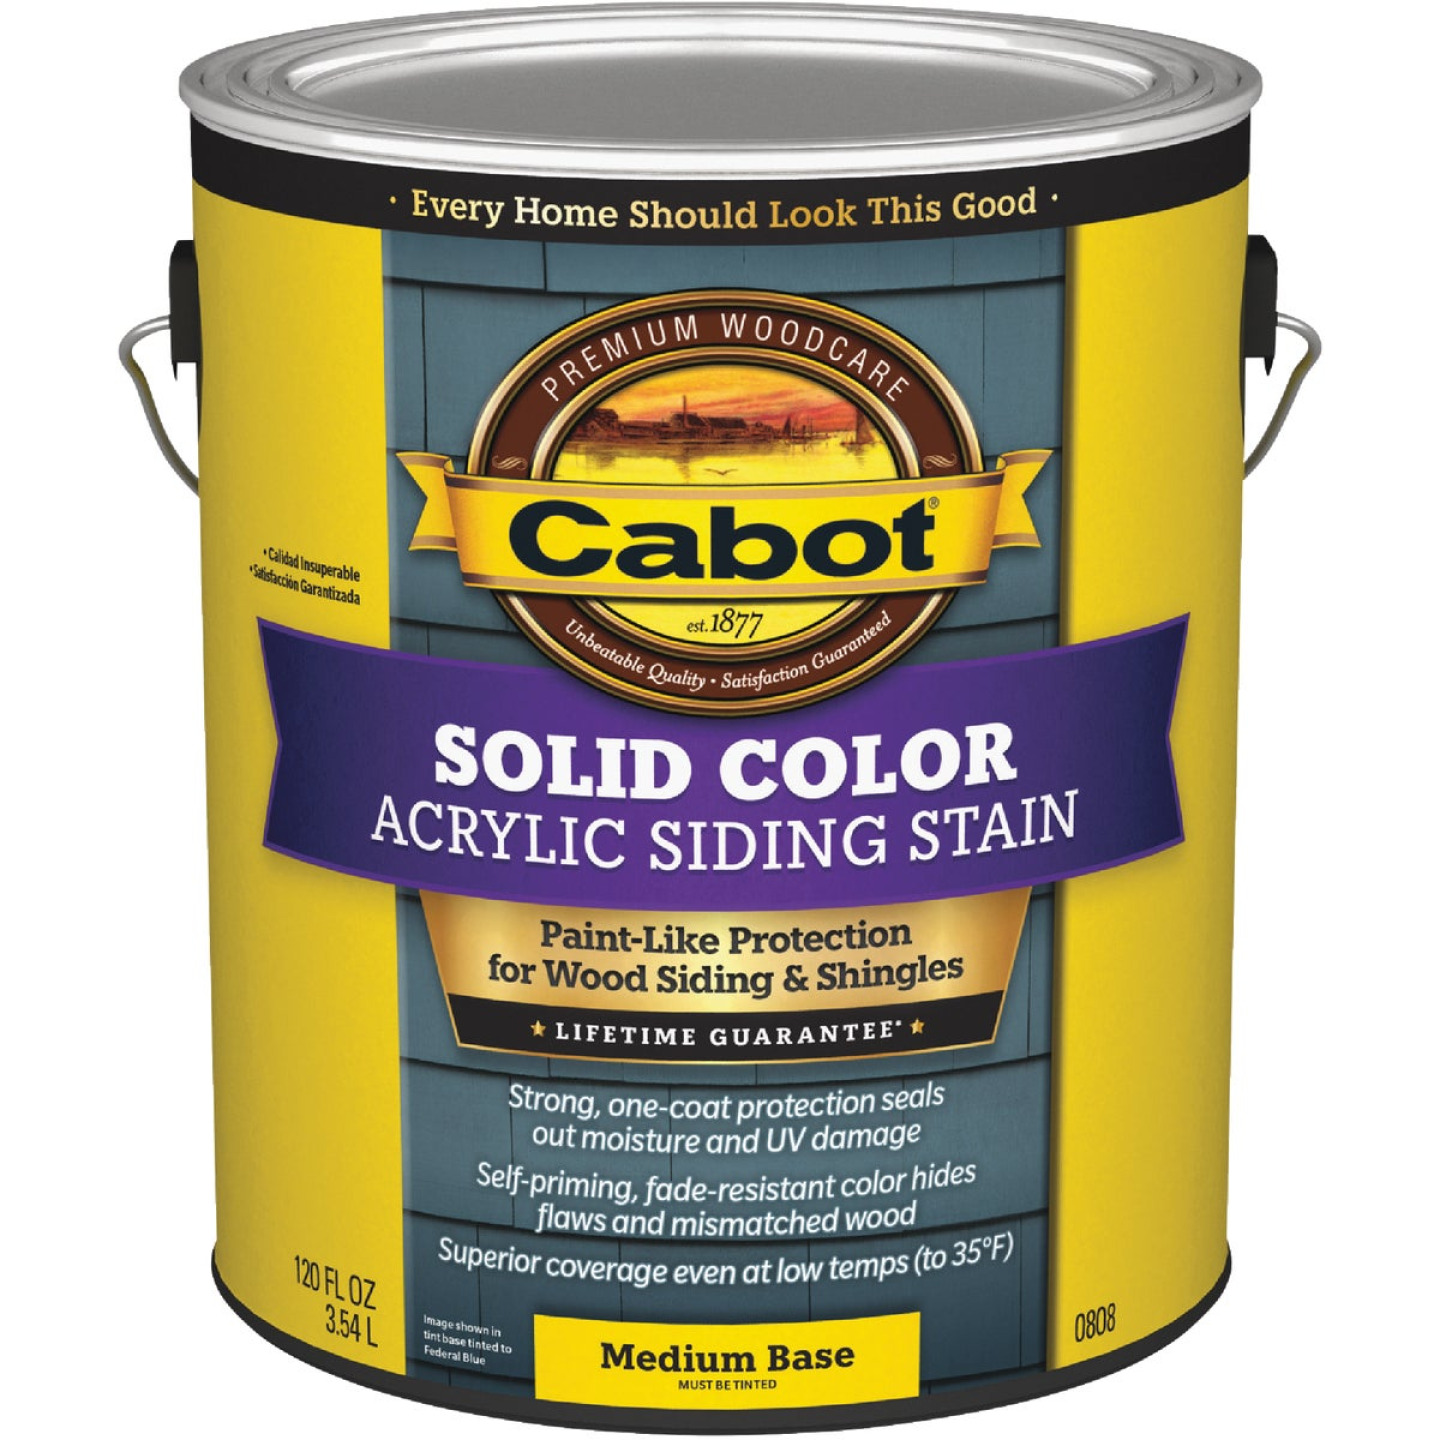 Cabot Solid Color Acrylic Siding Exterior Stain, Medium Base, 1 Gal. Image 1